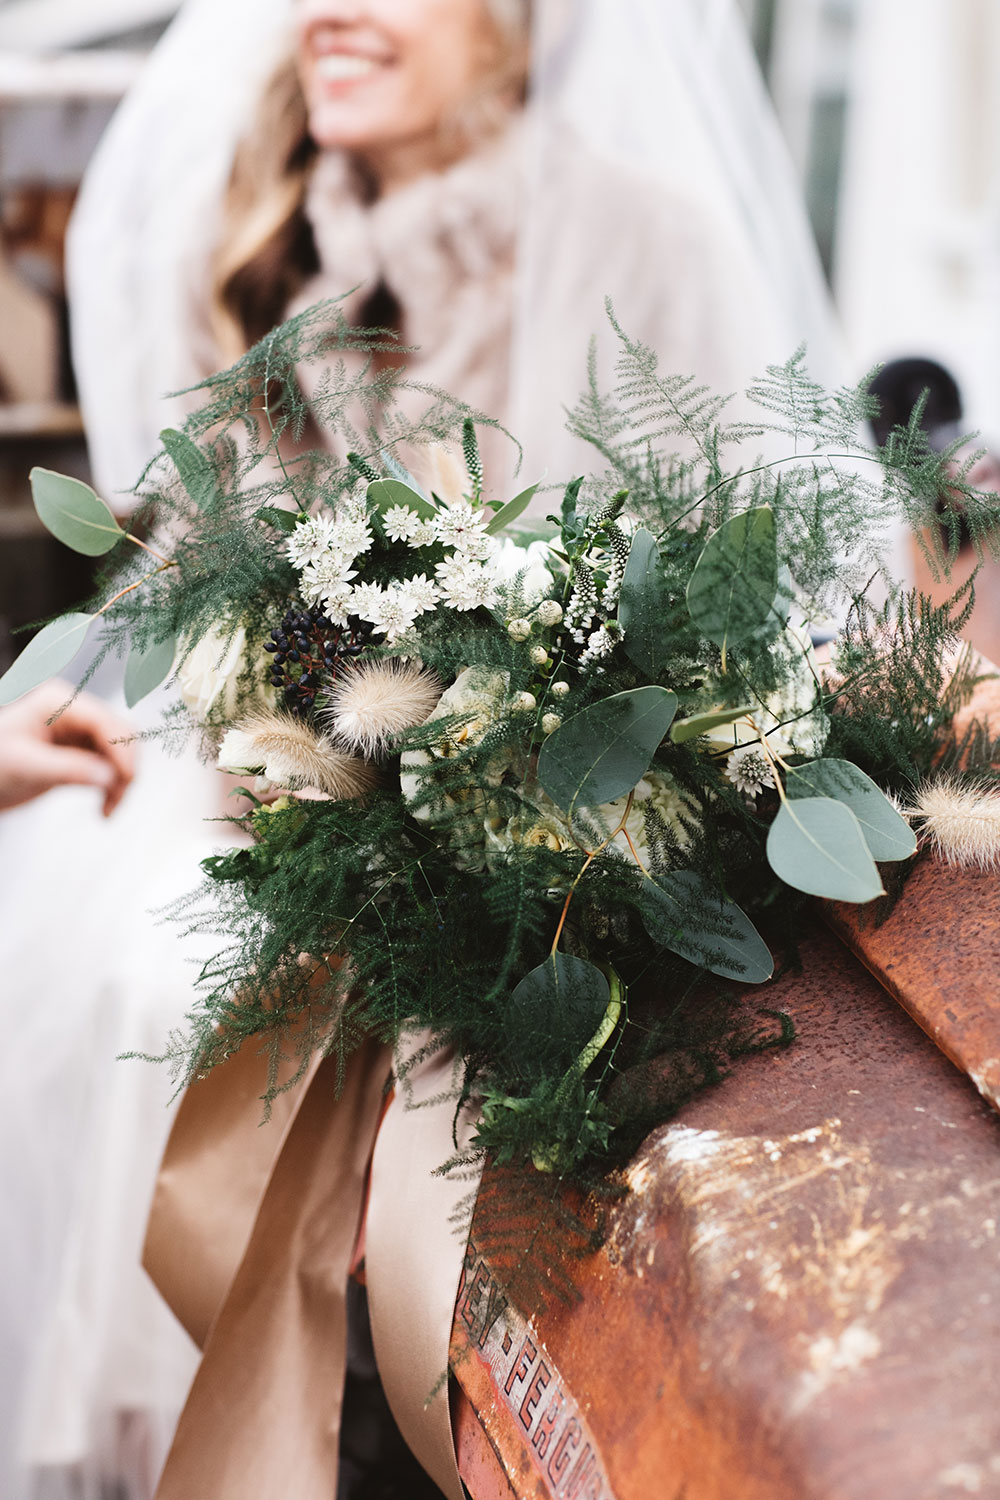 31-wilde-thyme-wedding-event-florist-flowers-winter-wedding-bridal-flowers-vintage-tractor.jpg